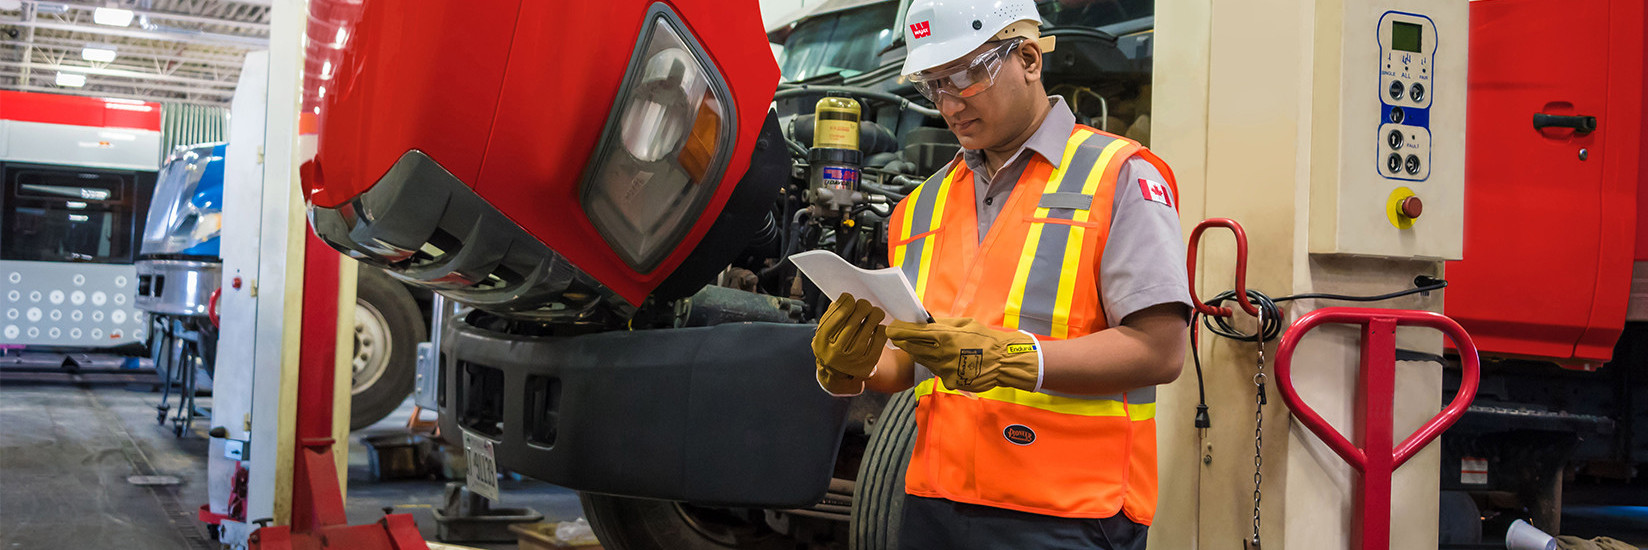 Wajax Is On A Hiring Spree – Labourers, Technicians & More Jobs Are Available, Apply Today!